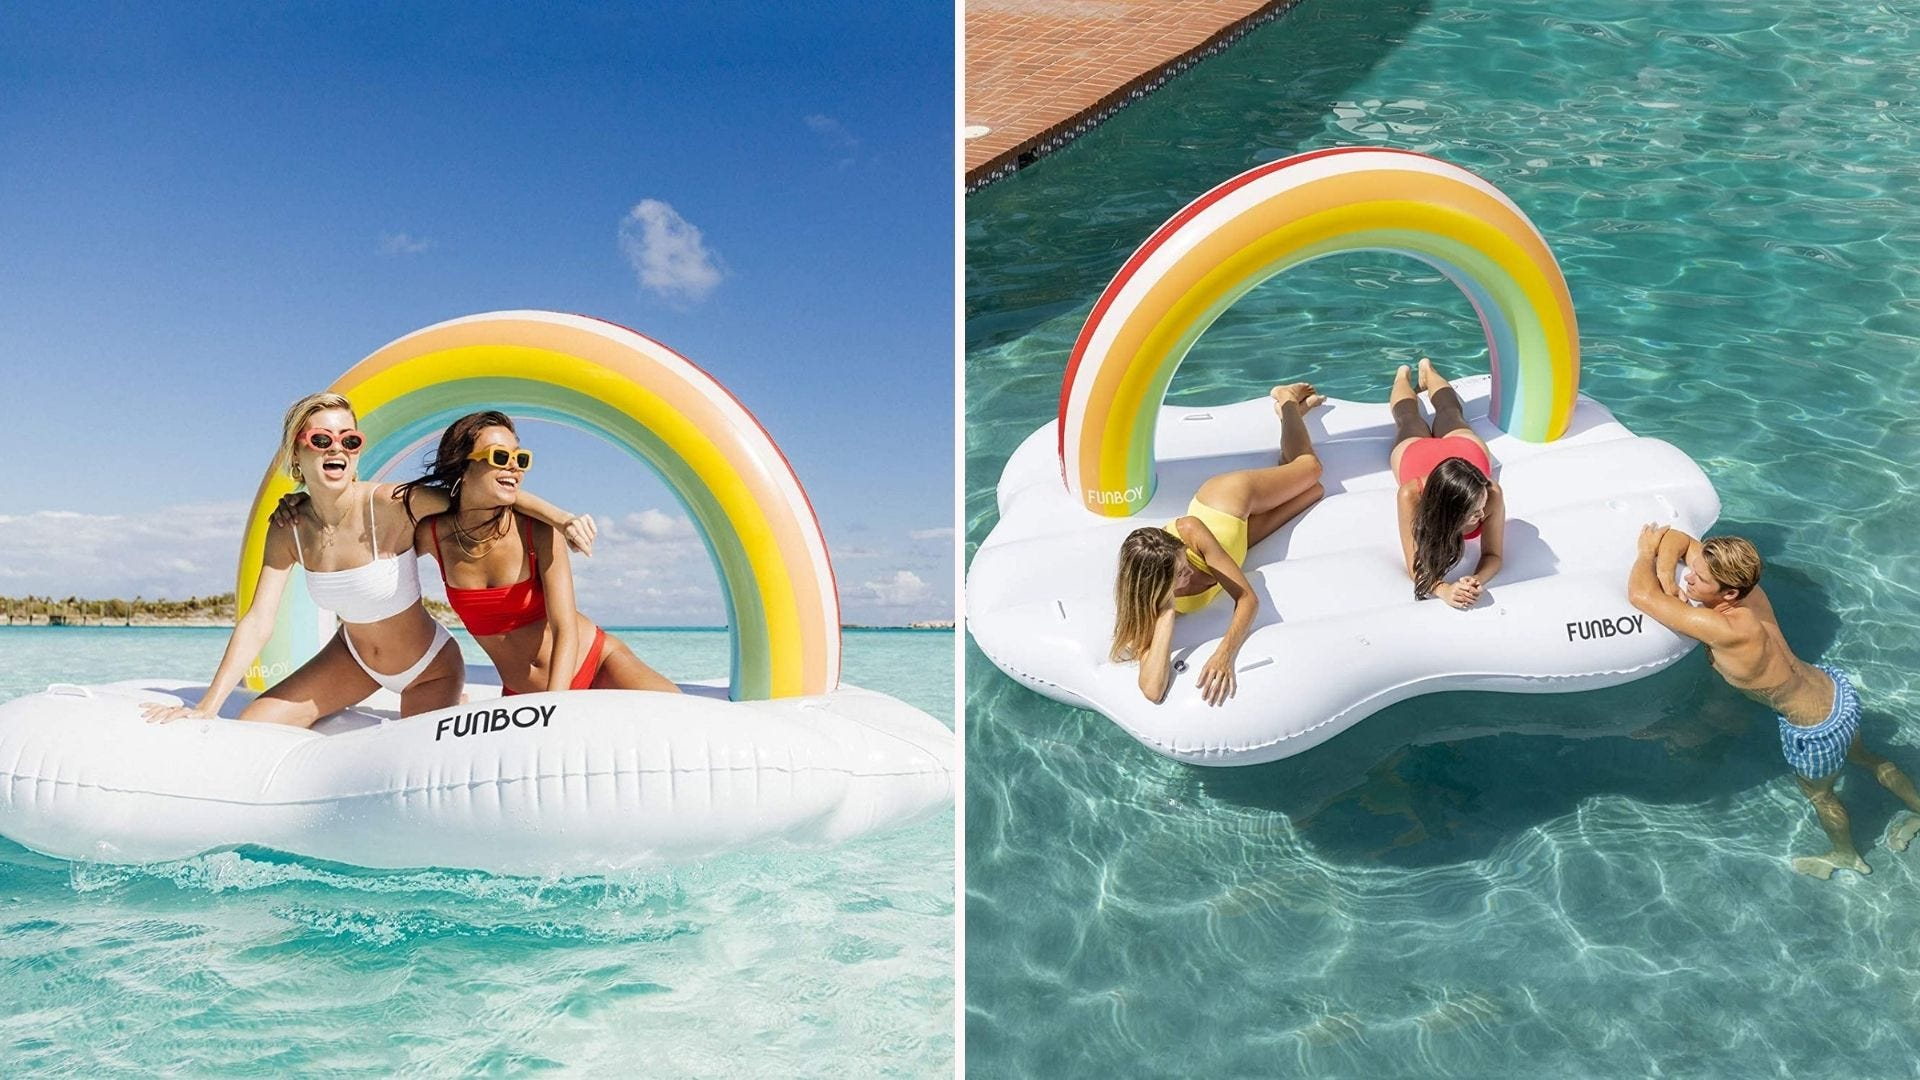 People hanging out on a cloud-shaped pool float